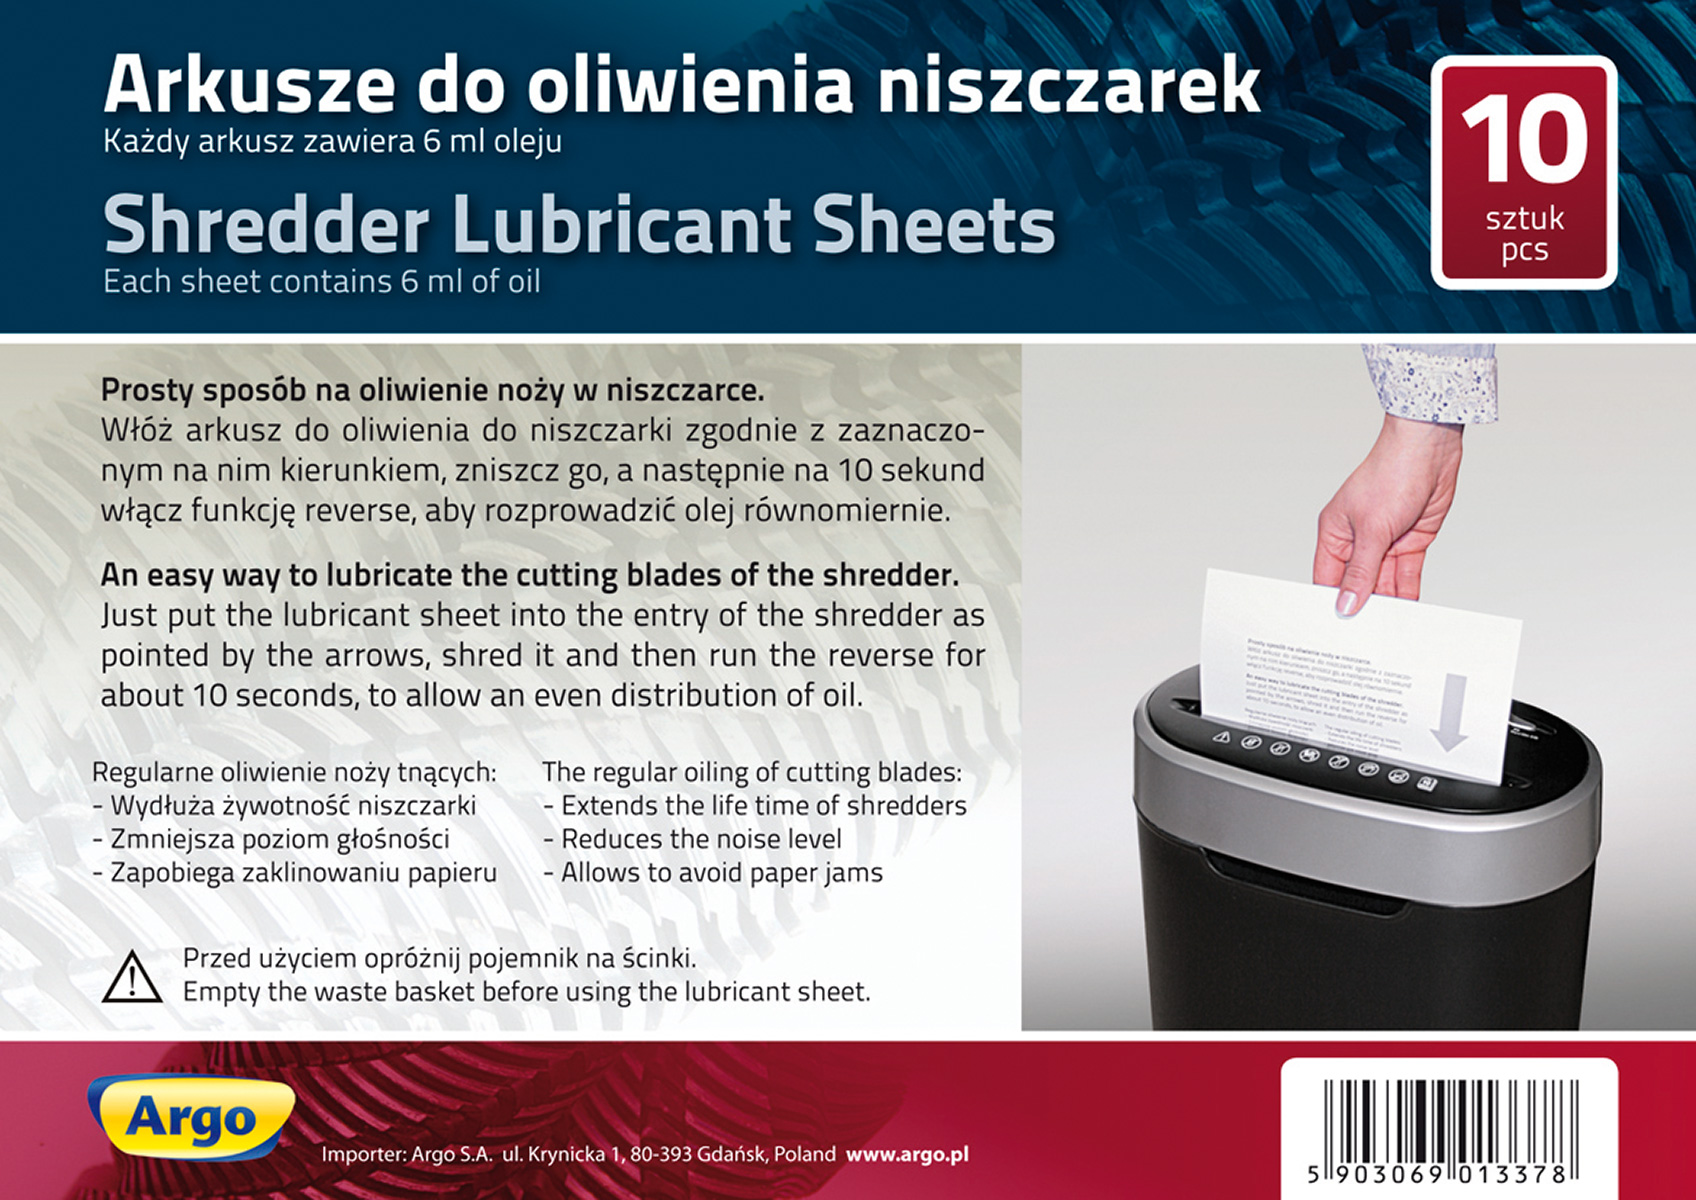 Shredder lubricant sheets